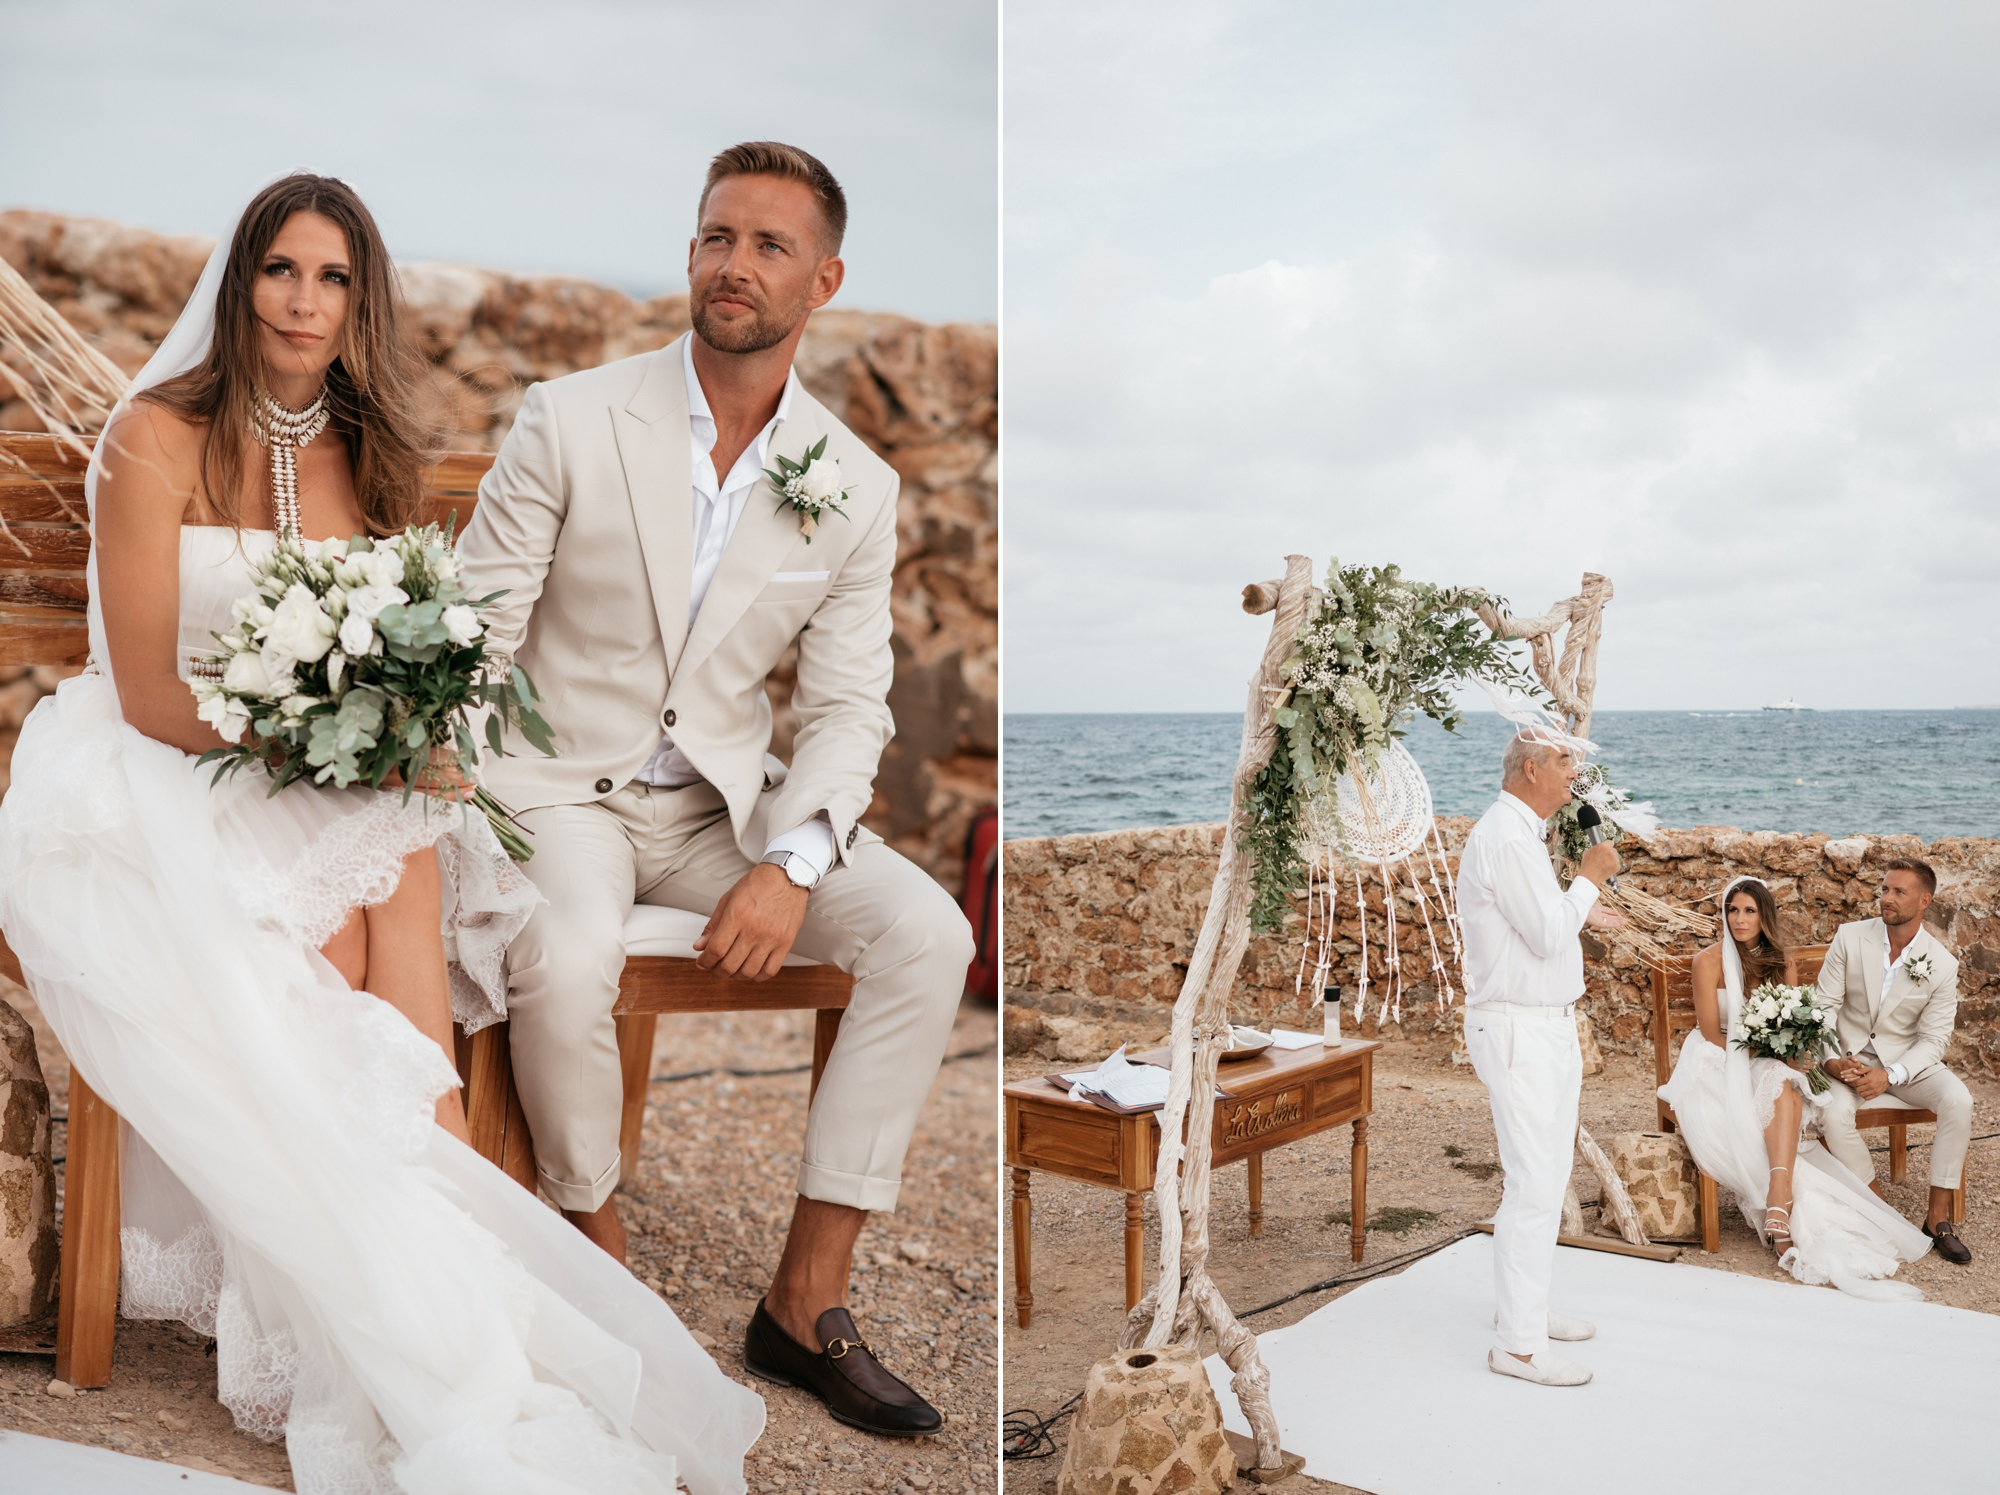 natural wedding photo destination la escollera ibiza 0057 1